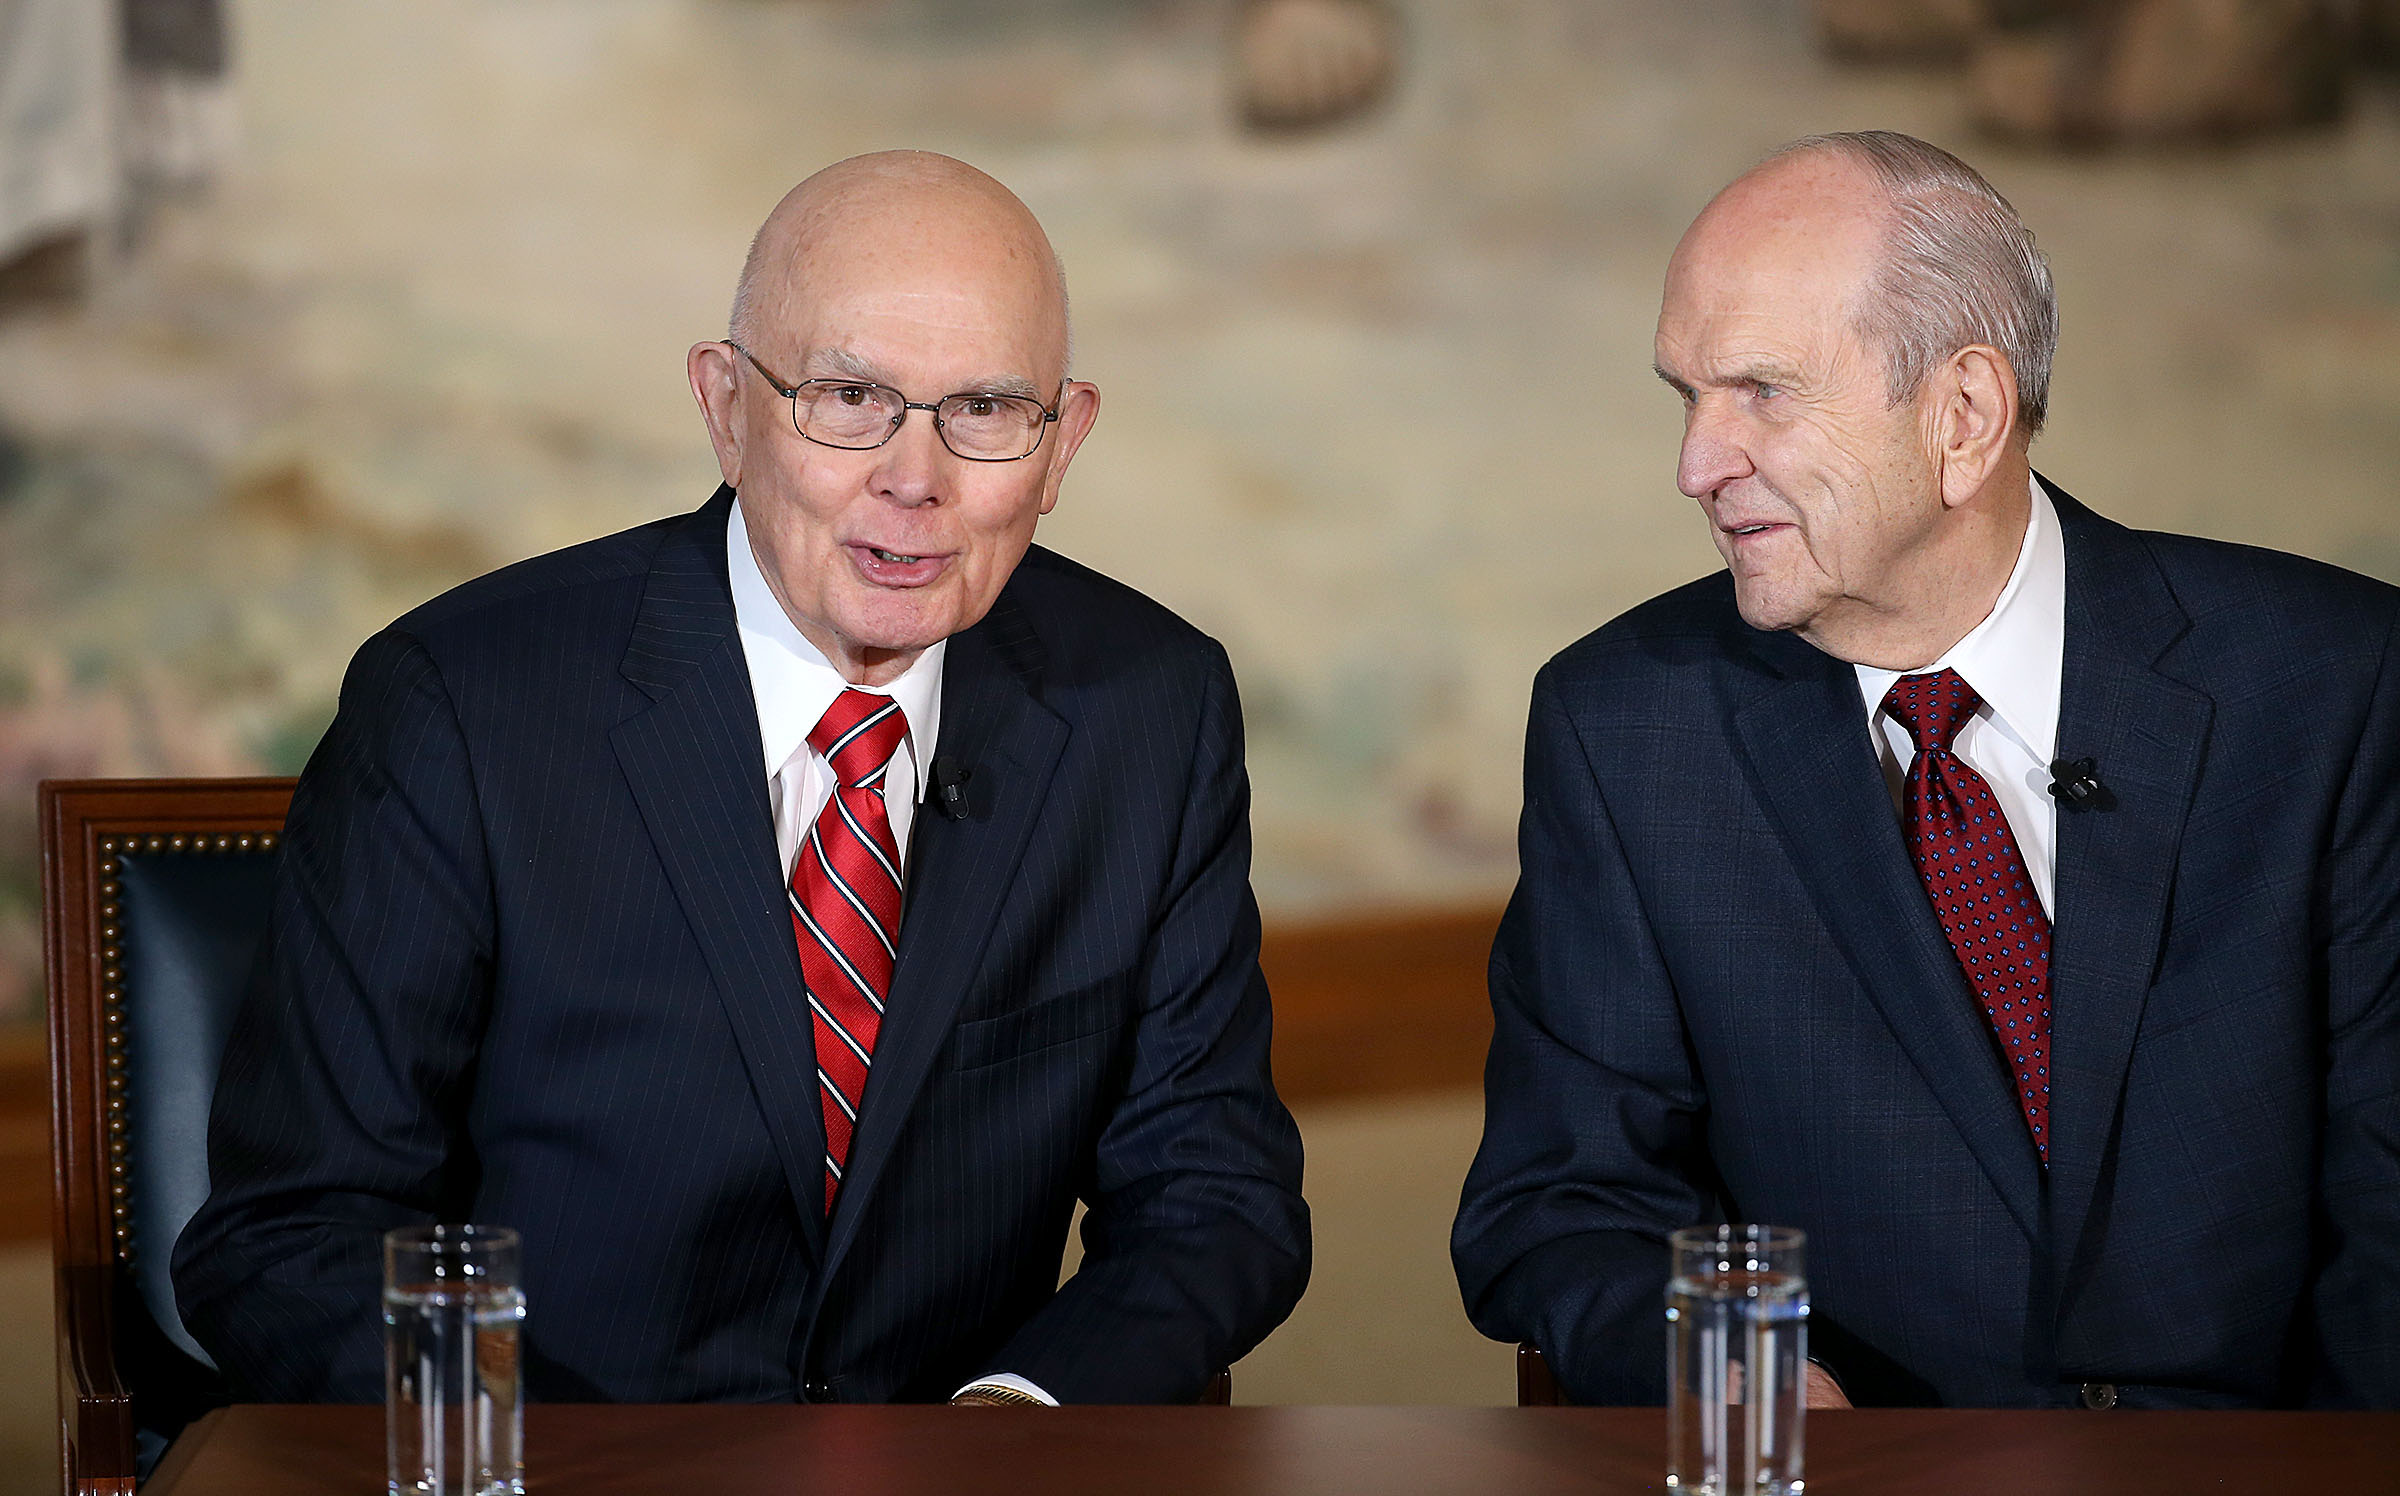 President Russell M. Nelson, center, is announced as the 17th president of The Church of Jesus Christ of Latter-day Saints Tuesday, Jan. 16, 2018. At left, President Dallin H. Oaks, first counselor.